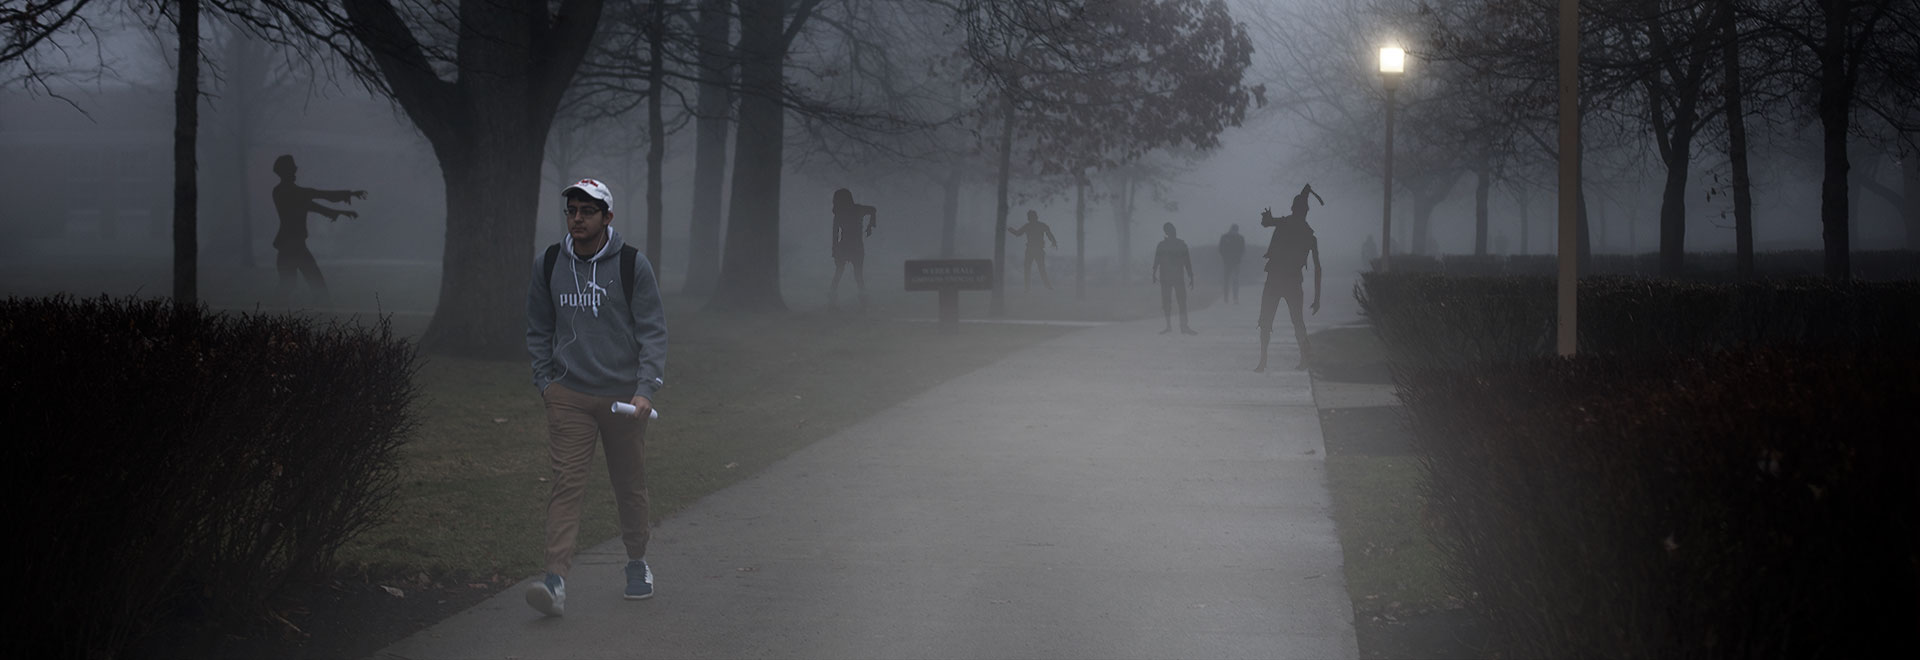 Look out for zombies, ghosts and ghouls on campus during Halloween